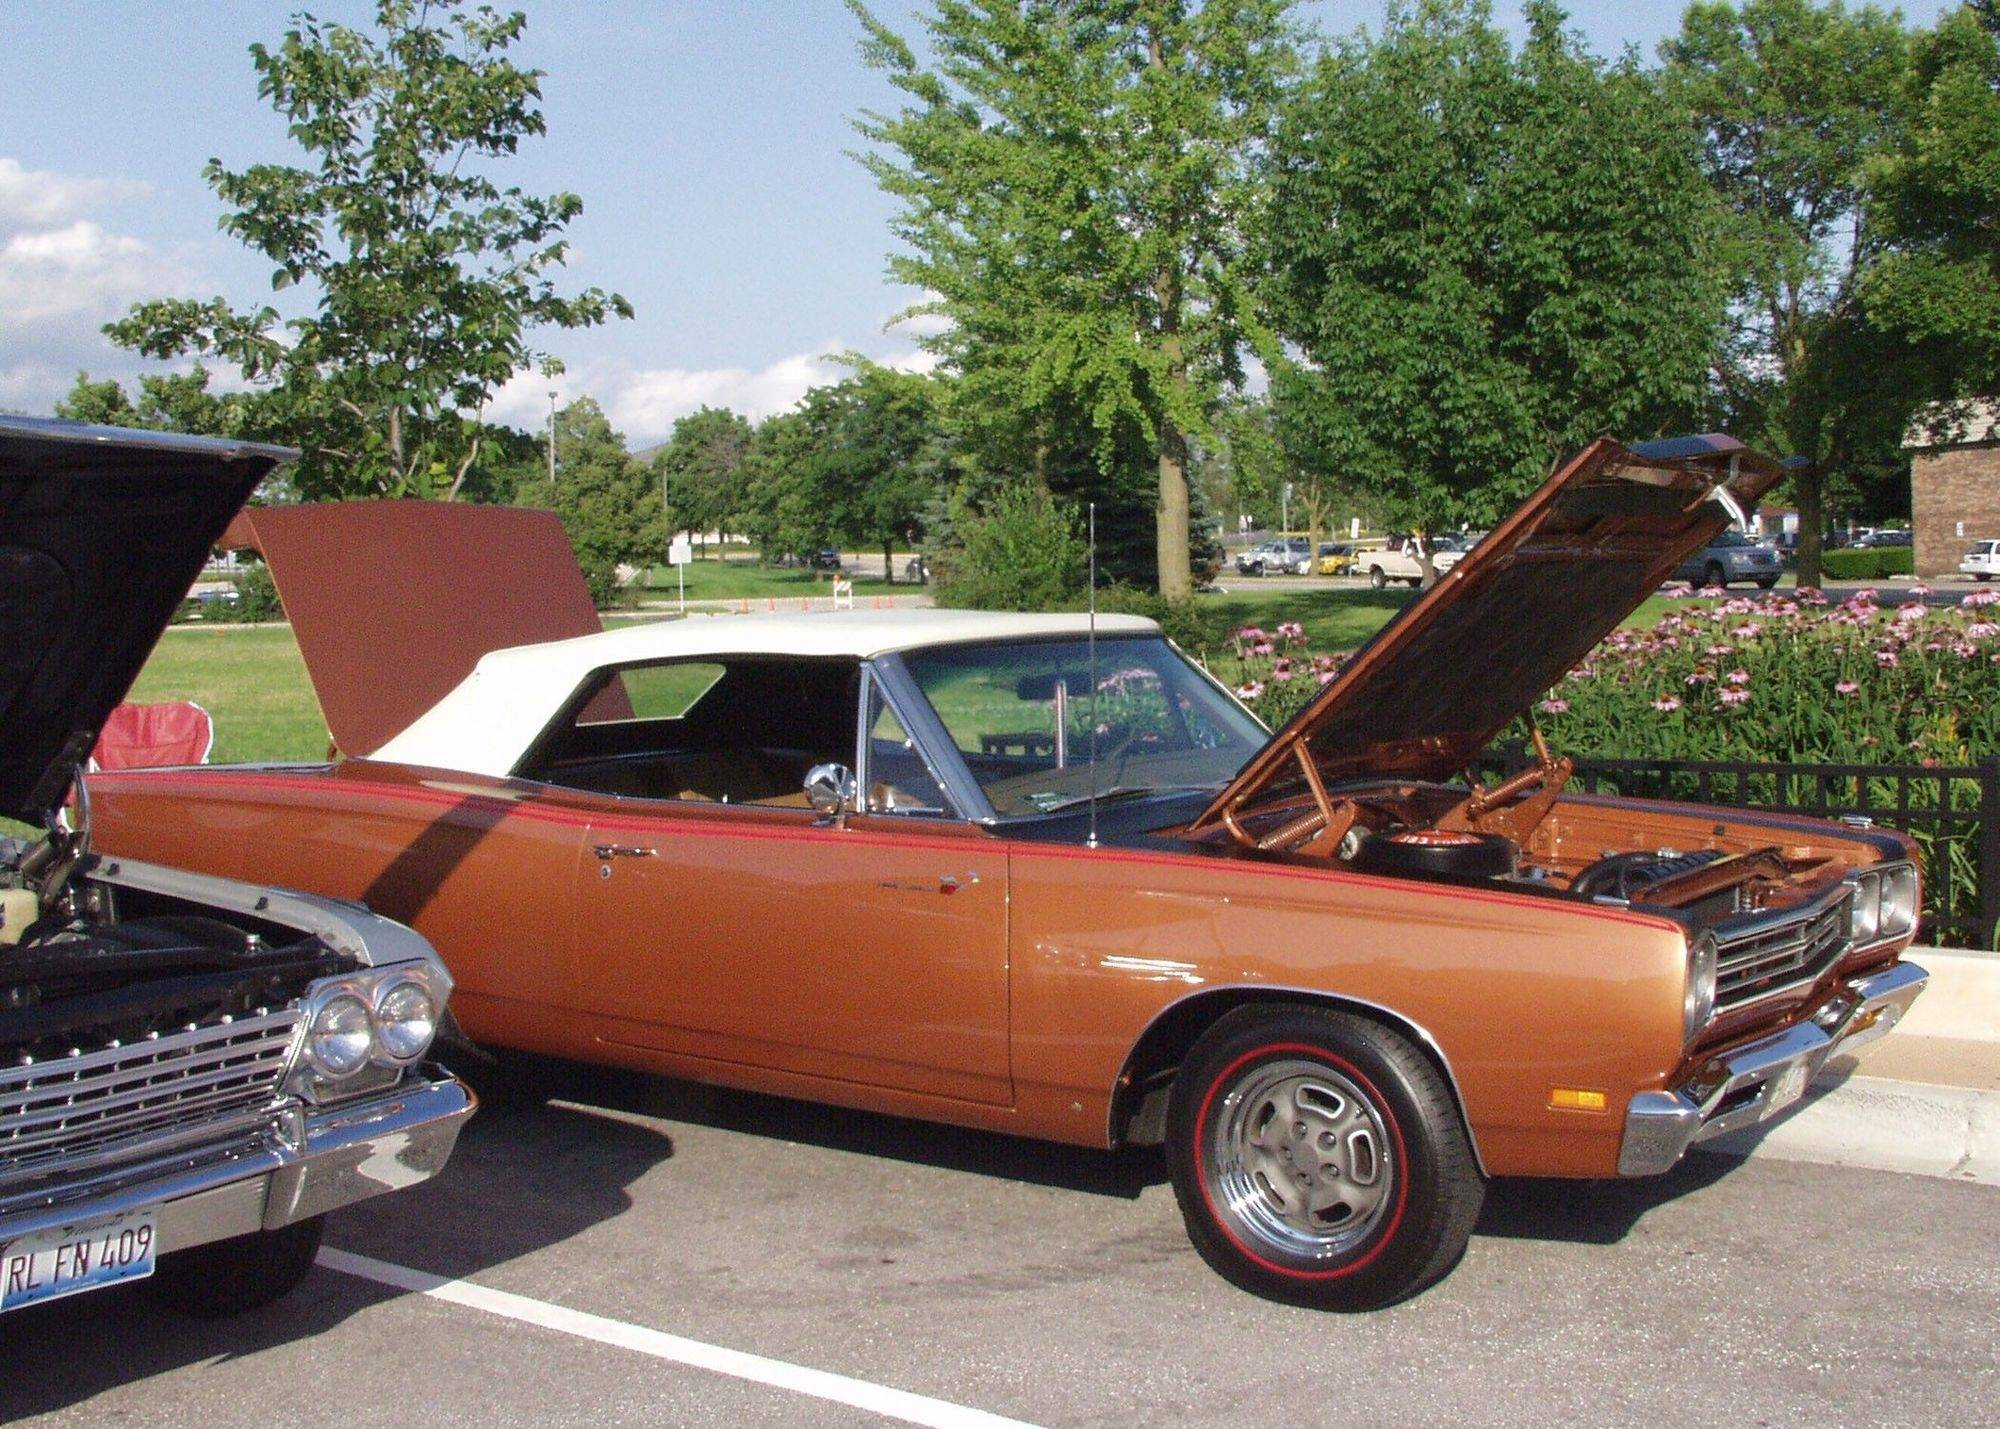 Lisle resident Ed Czyz has loved muscle cars as long as he could drive and bought this 1969 Plymouth Road Runner at auction. He displays the car at cruise nights in Lisle.